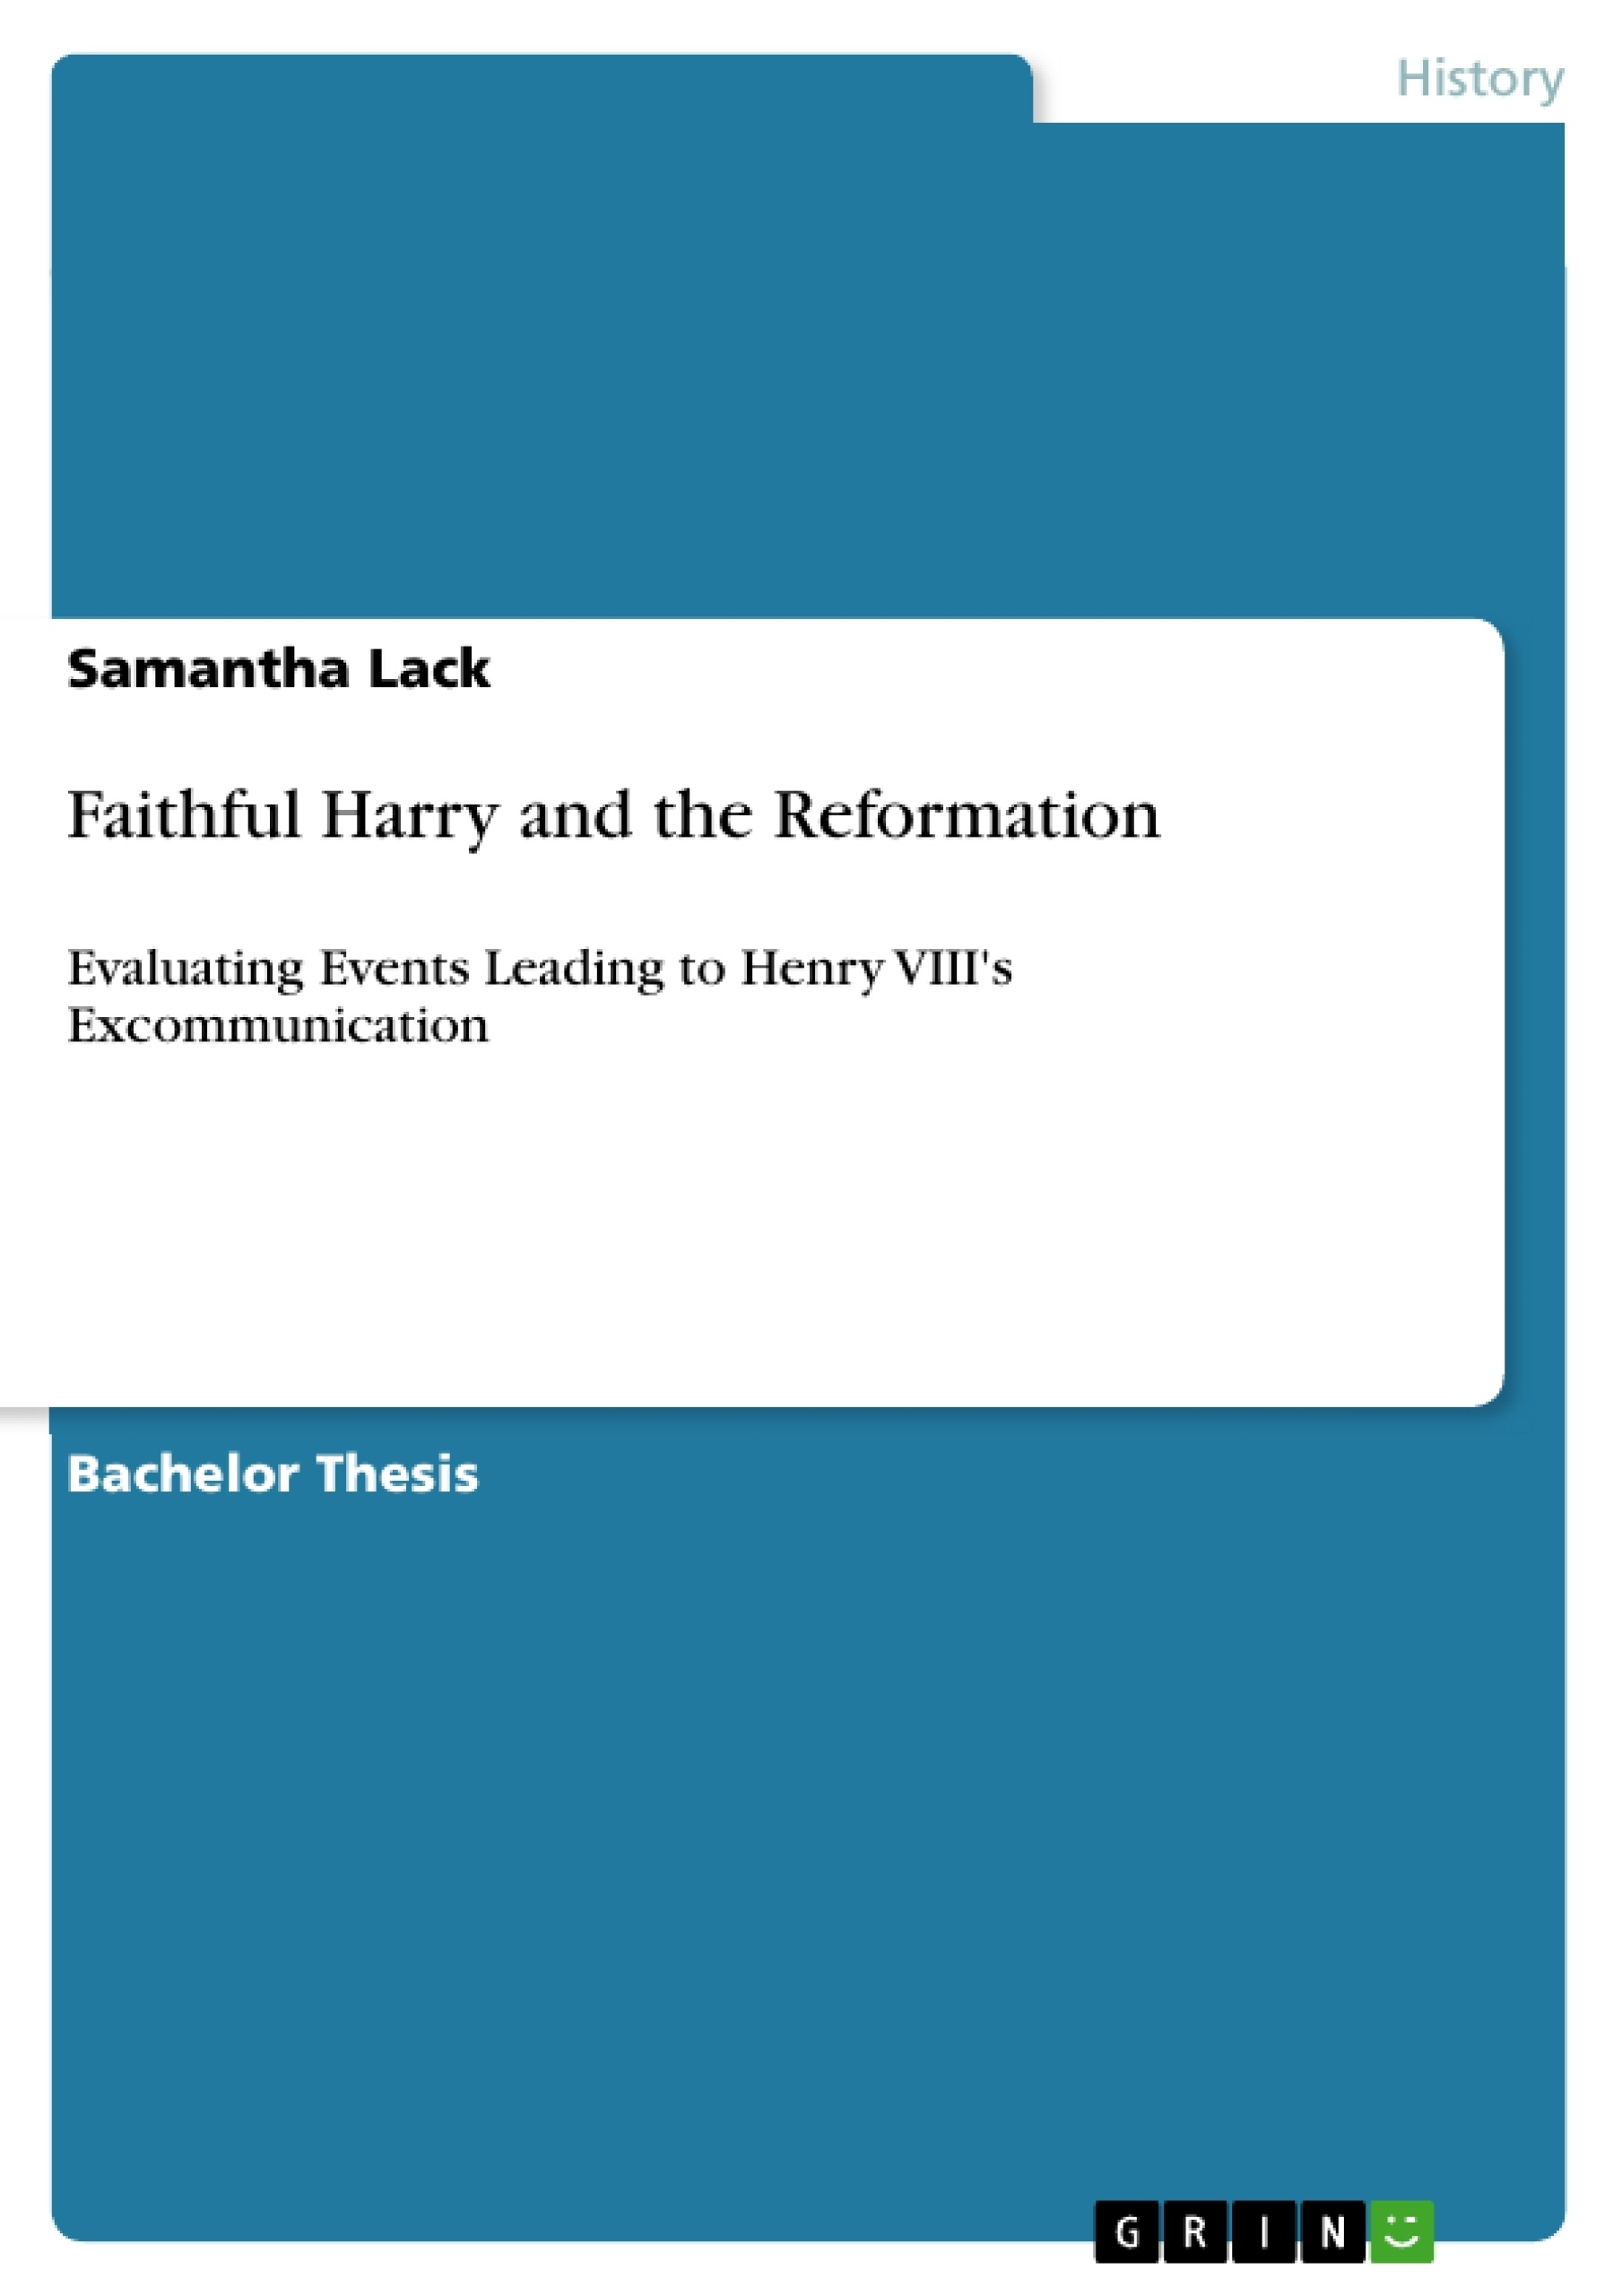 Title: Faithful Harry and the Reformation